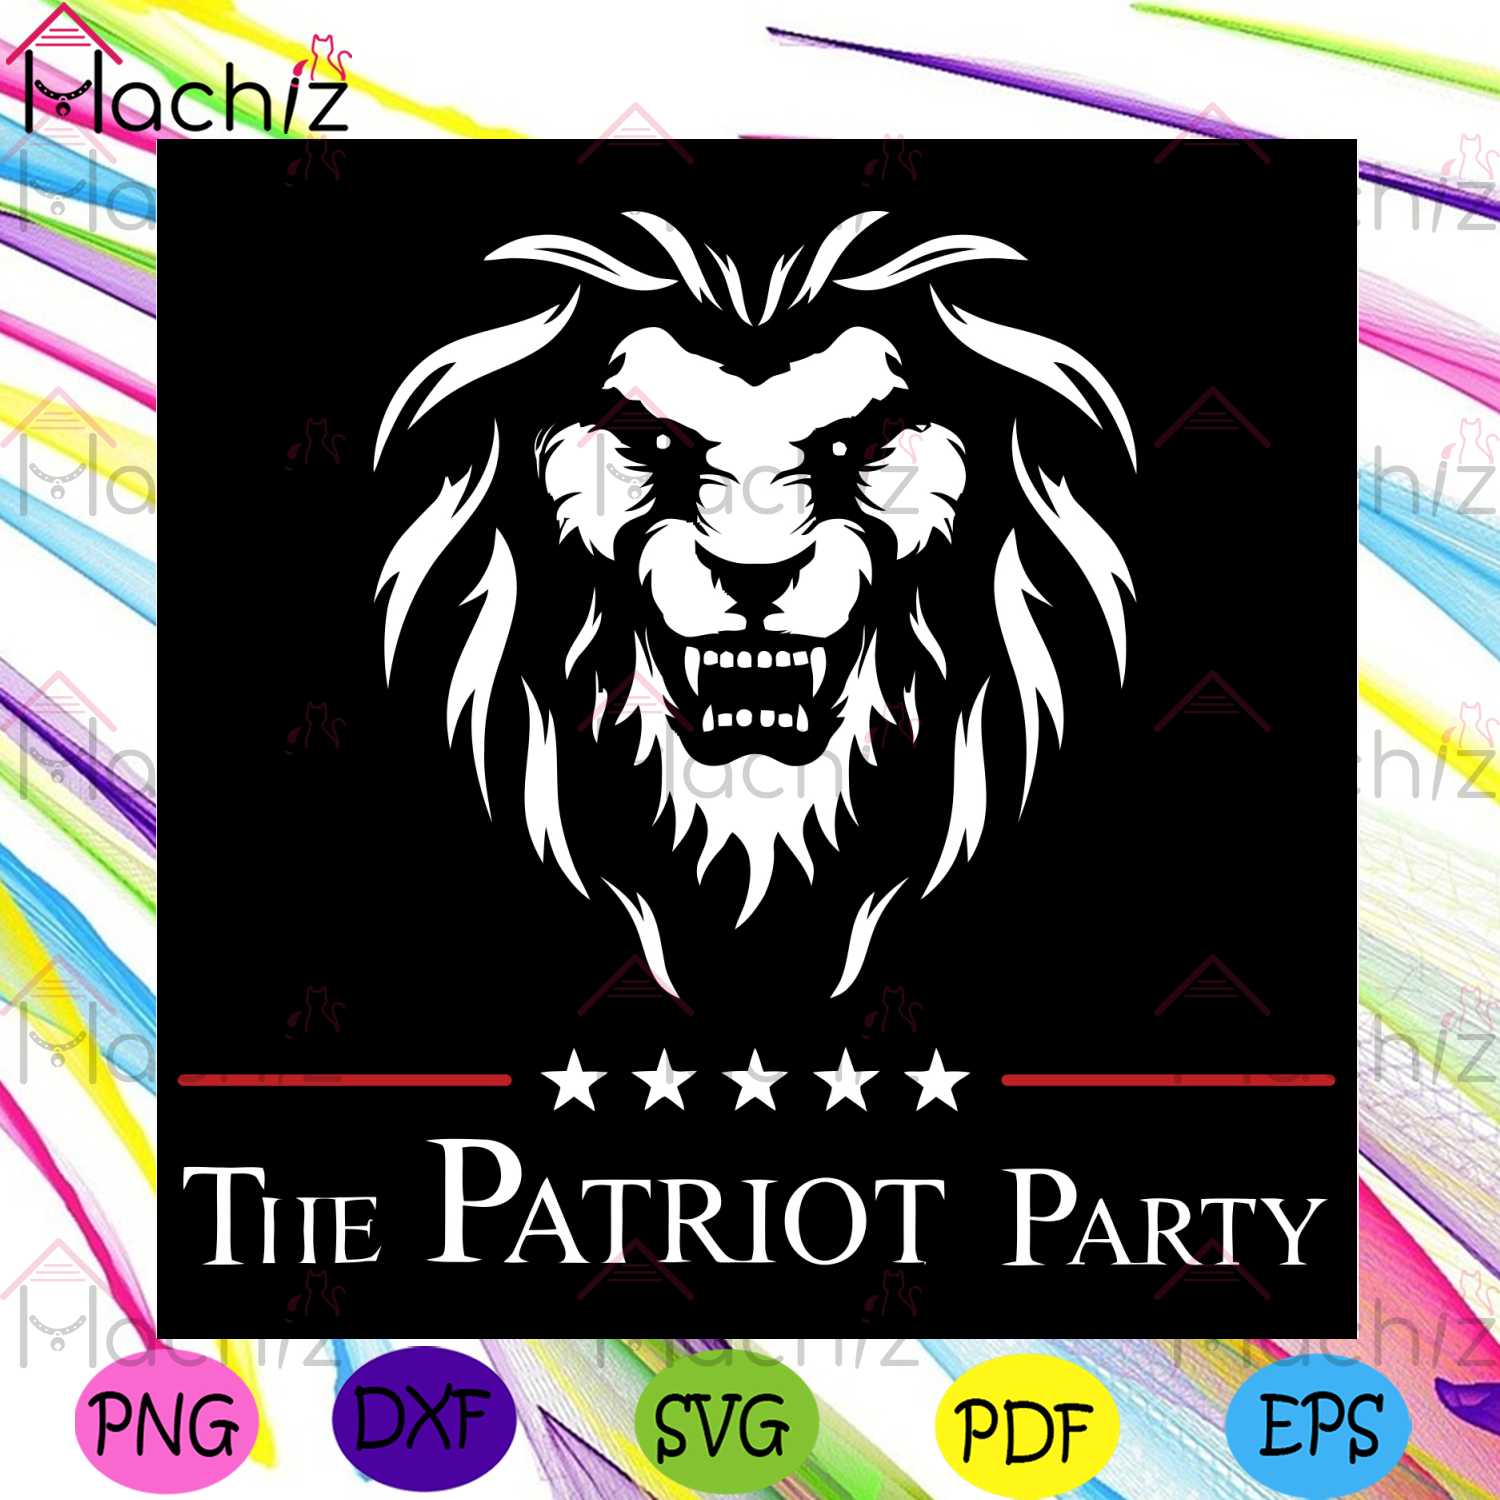 The Patriot Party Svg, Trending Svg, The Patriot Party Lion Svg, Lion Head Svg, The Patriot Party Lion Gifts Svg, The Patriot Party Lion Logo Svg, Lion Face Svg, Vintage Svg, Vintage Lion Svg, Retro Design Svg